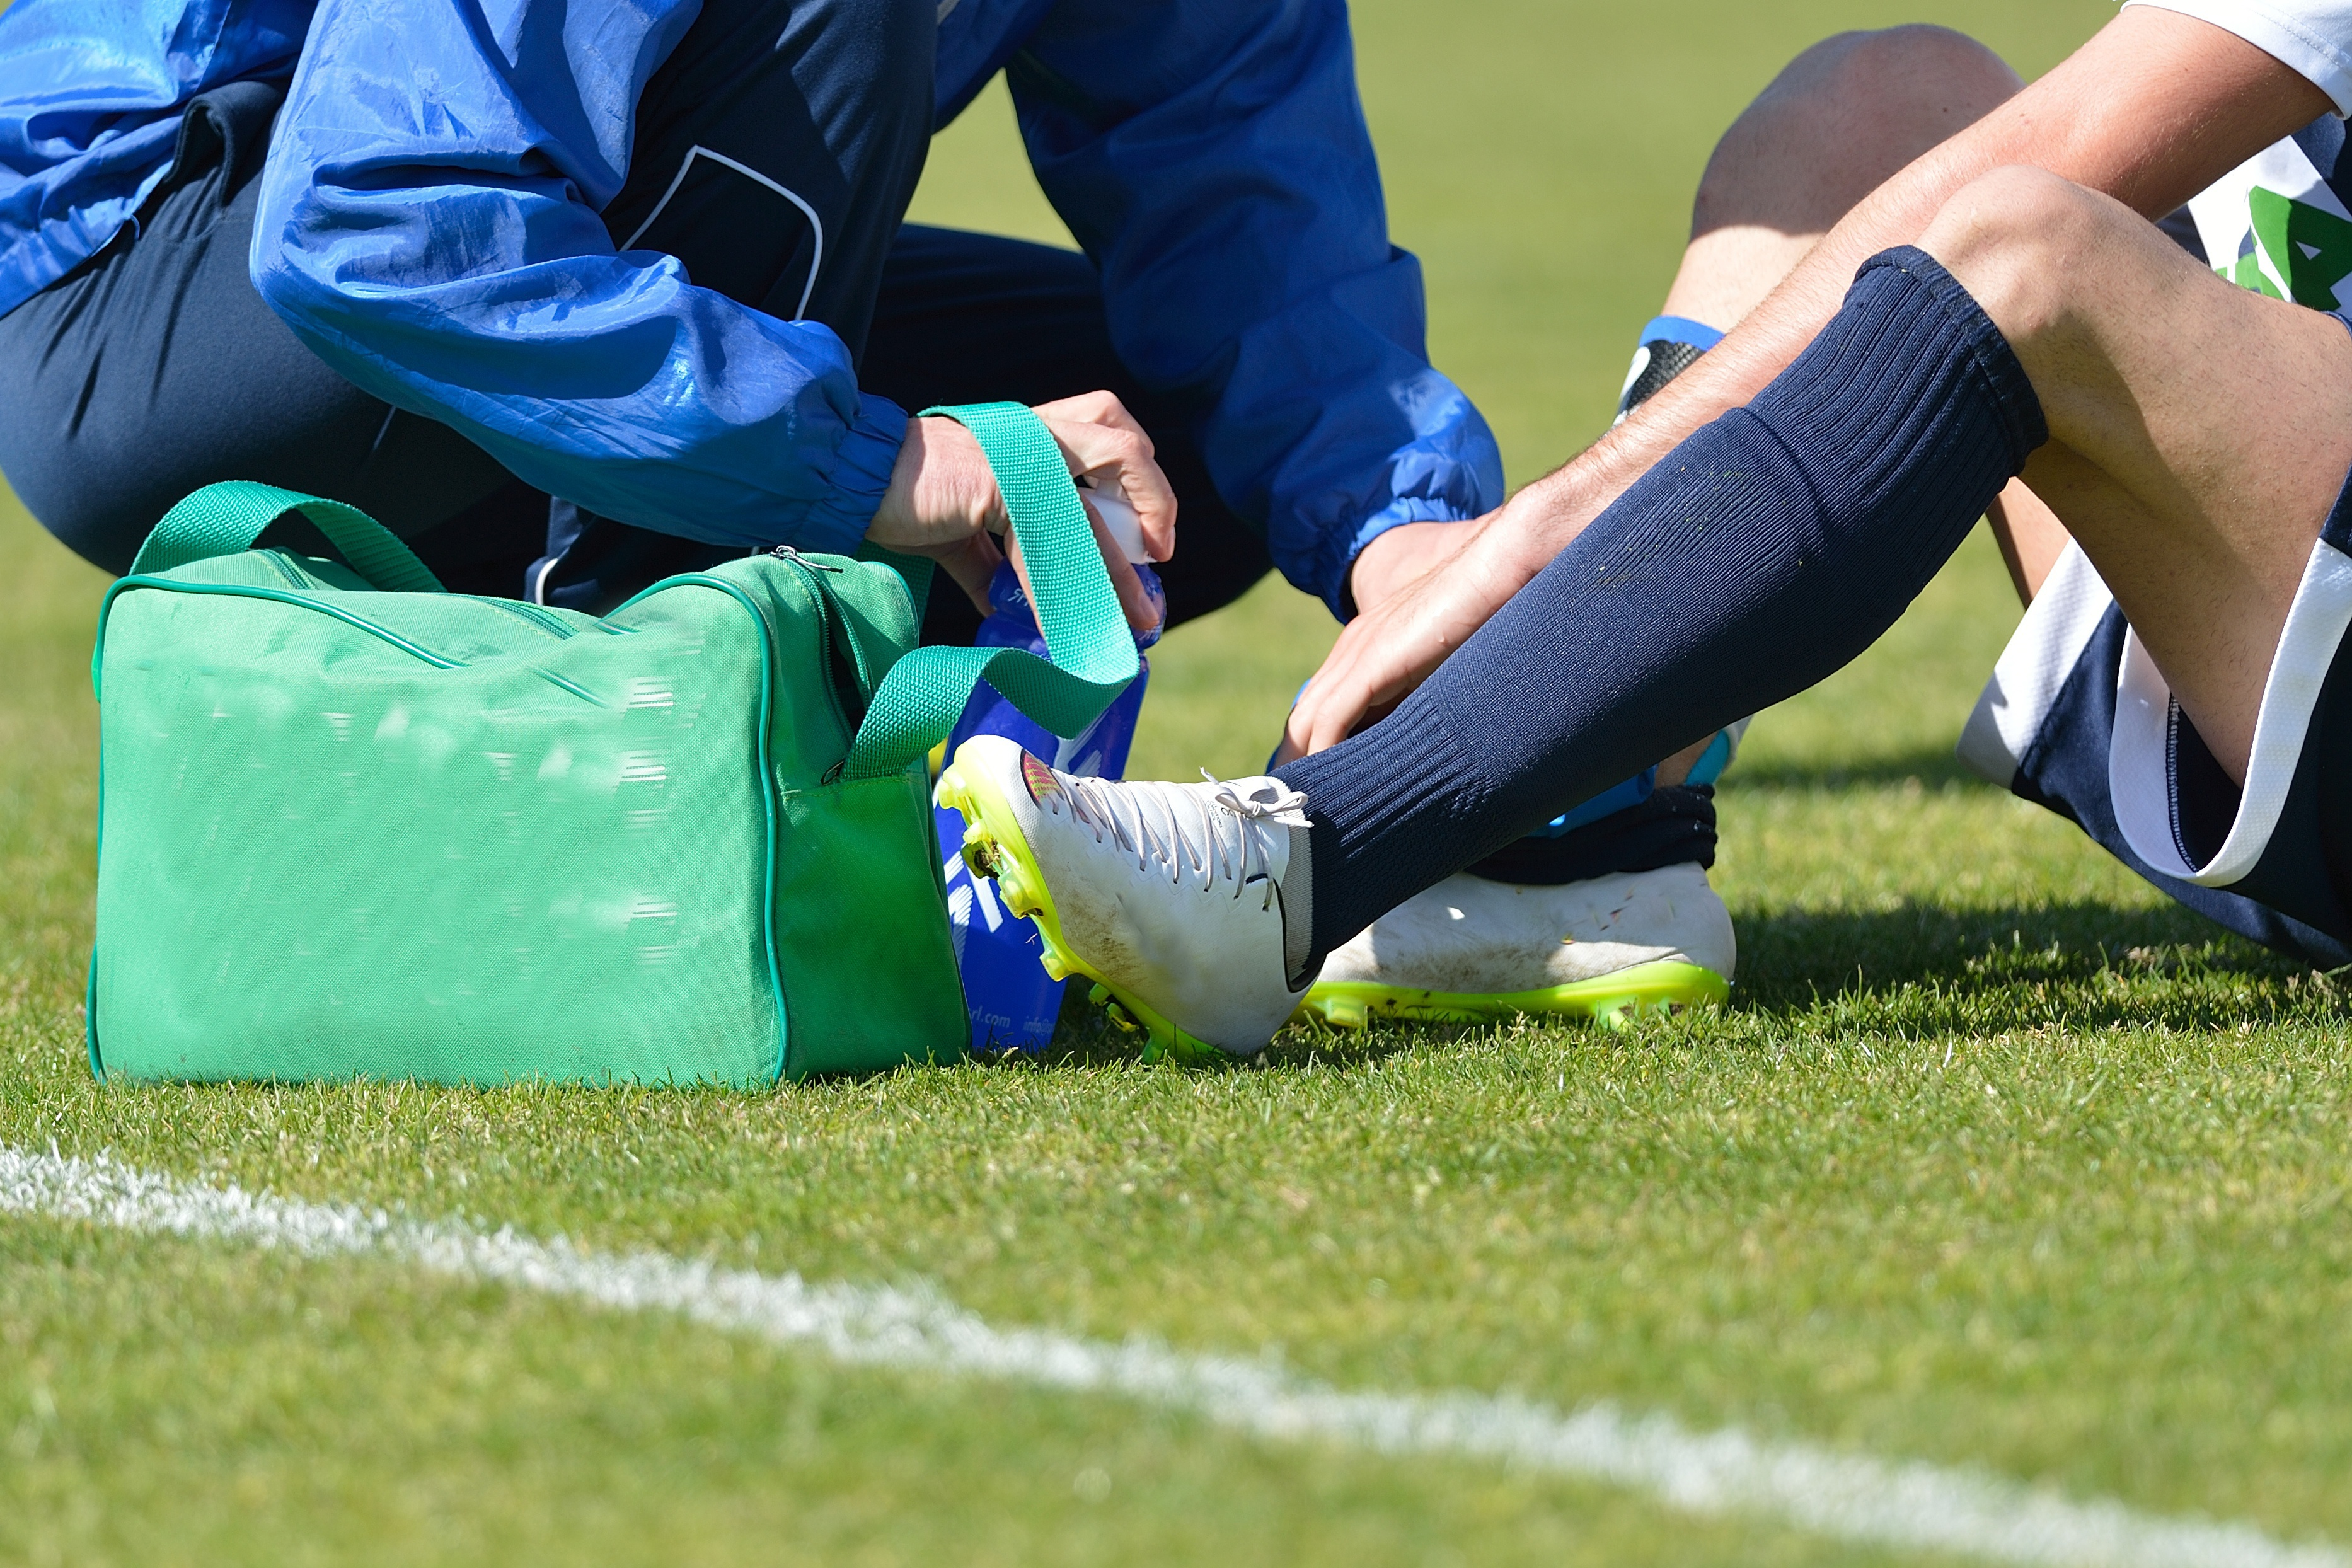 How to recuperate from an ankle injury